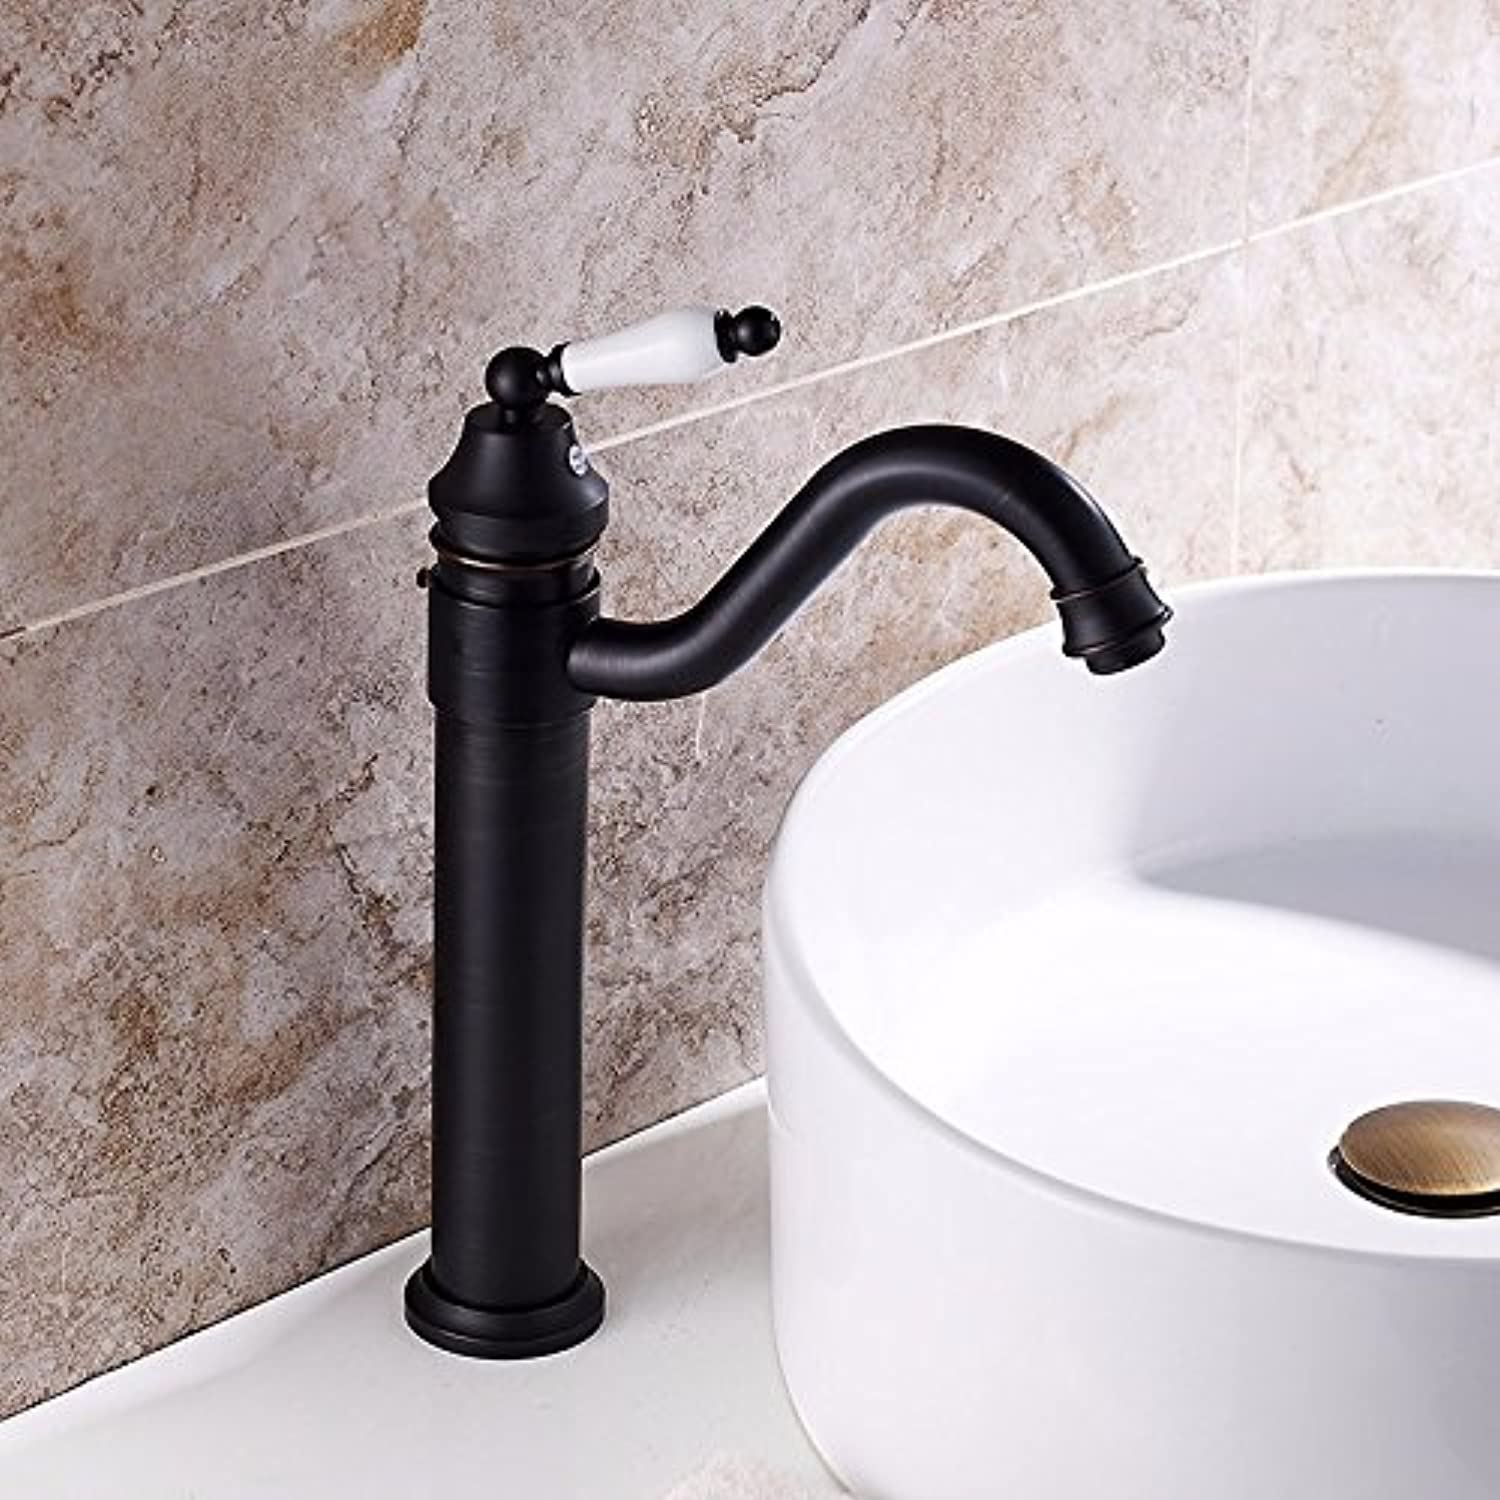 Hlluya Professional Sink Mixer Tap Kitchen Faucet Black faucet sink hot and cold faucets antique table basin mixer